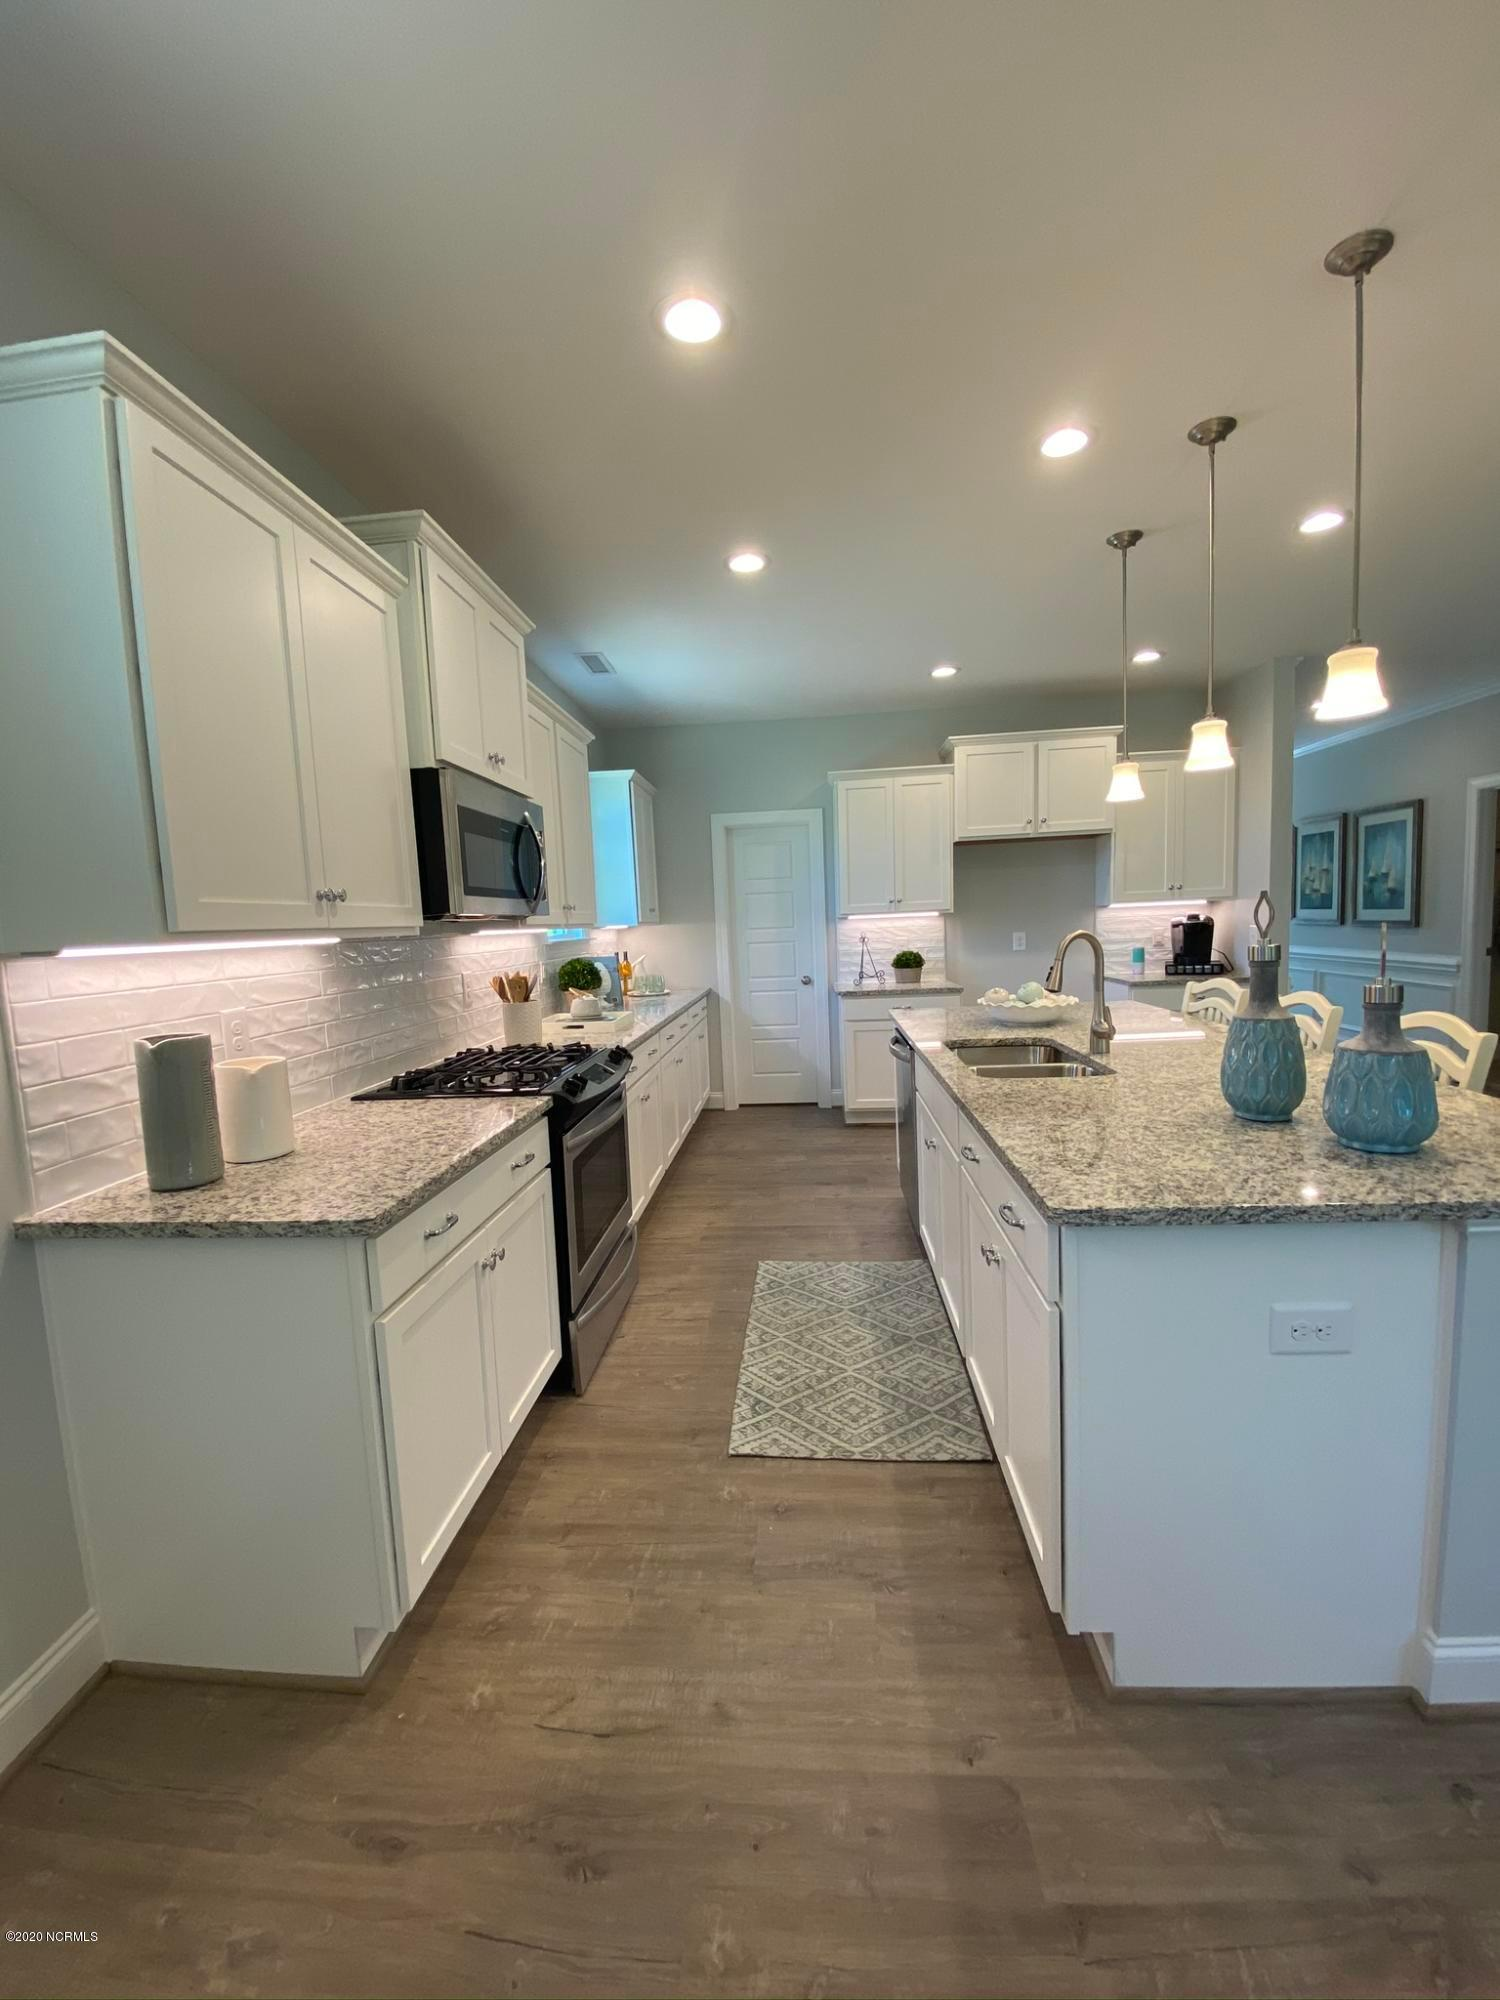 Kitchen featured in the 31 Shooting Star By RobuckHomes in Jacksonville, NC